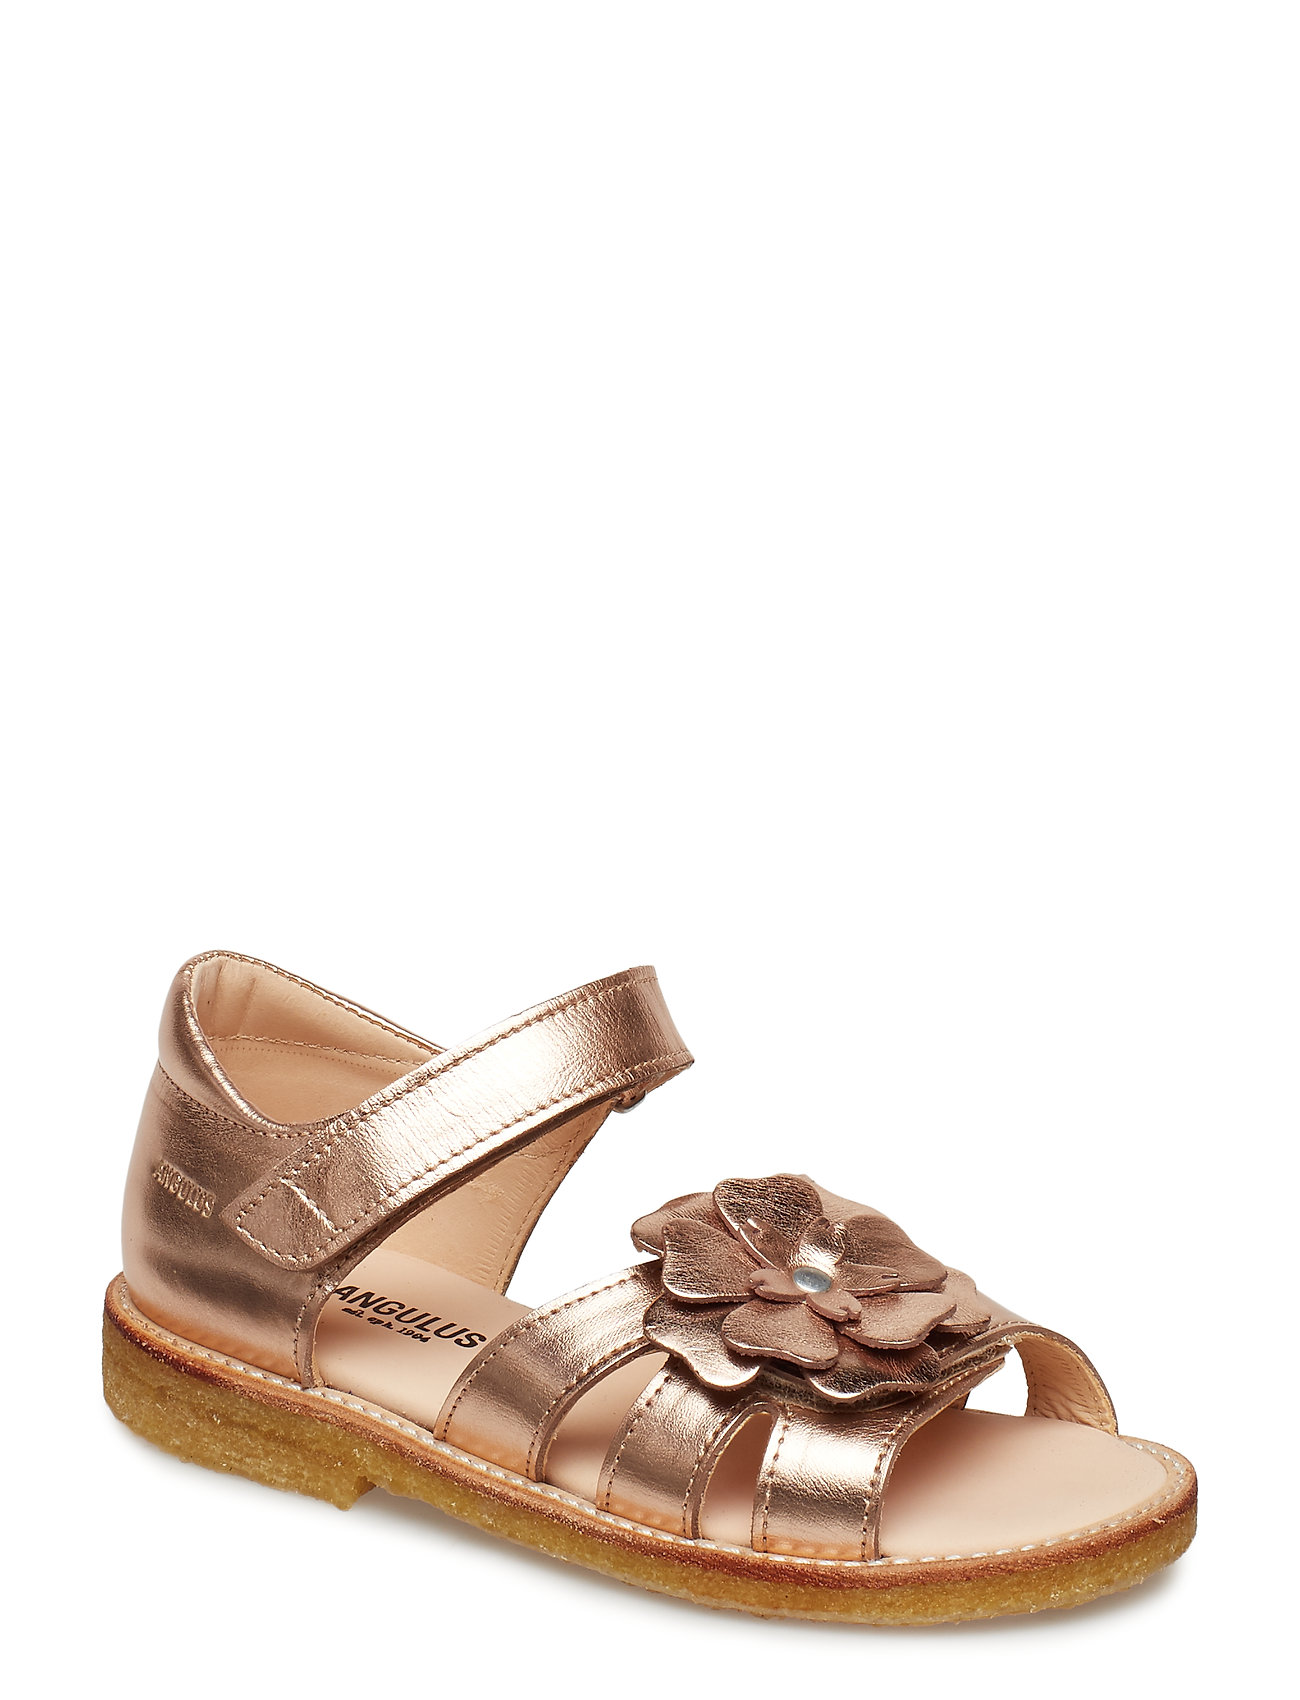 Image of Sandals - Flat - Open Toe - Clo Sandaler Guld ANGULUS (3249927567)